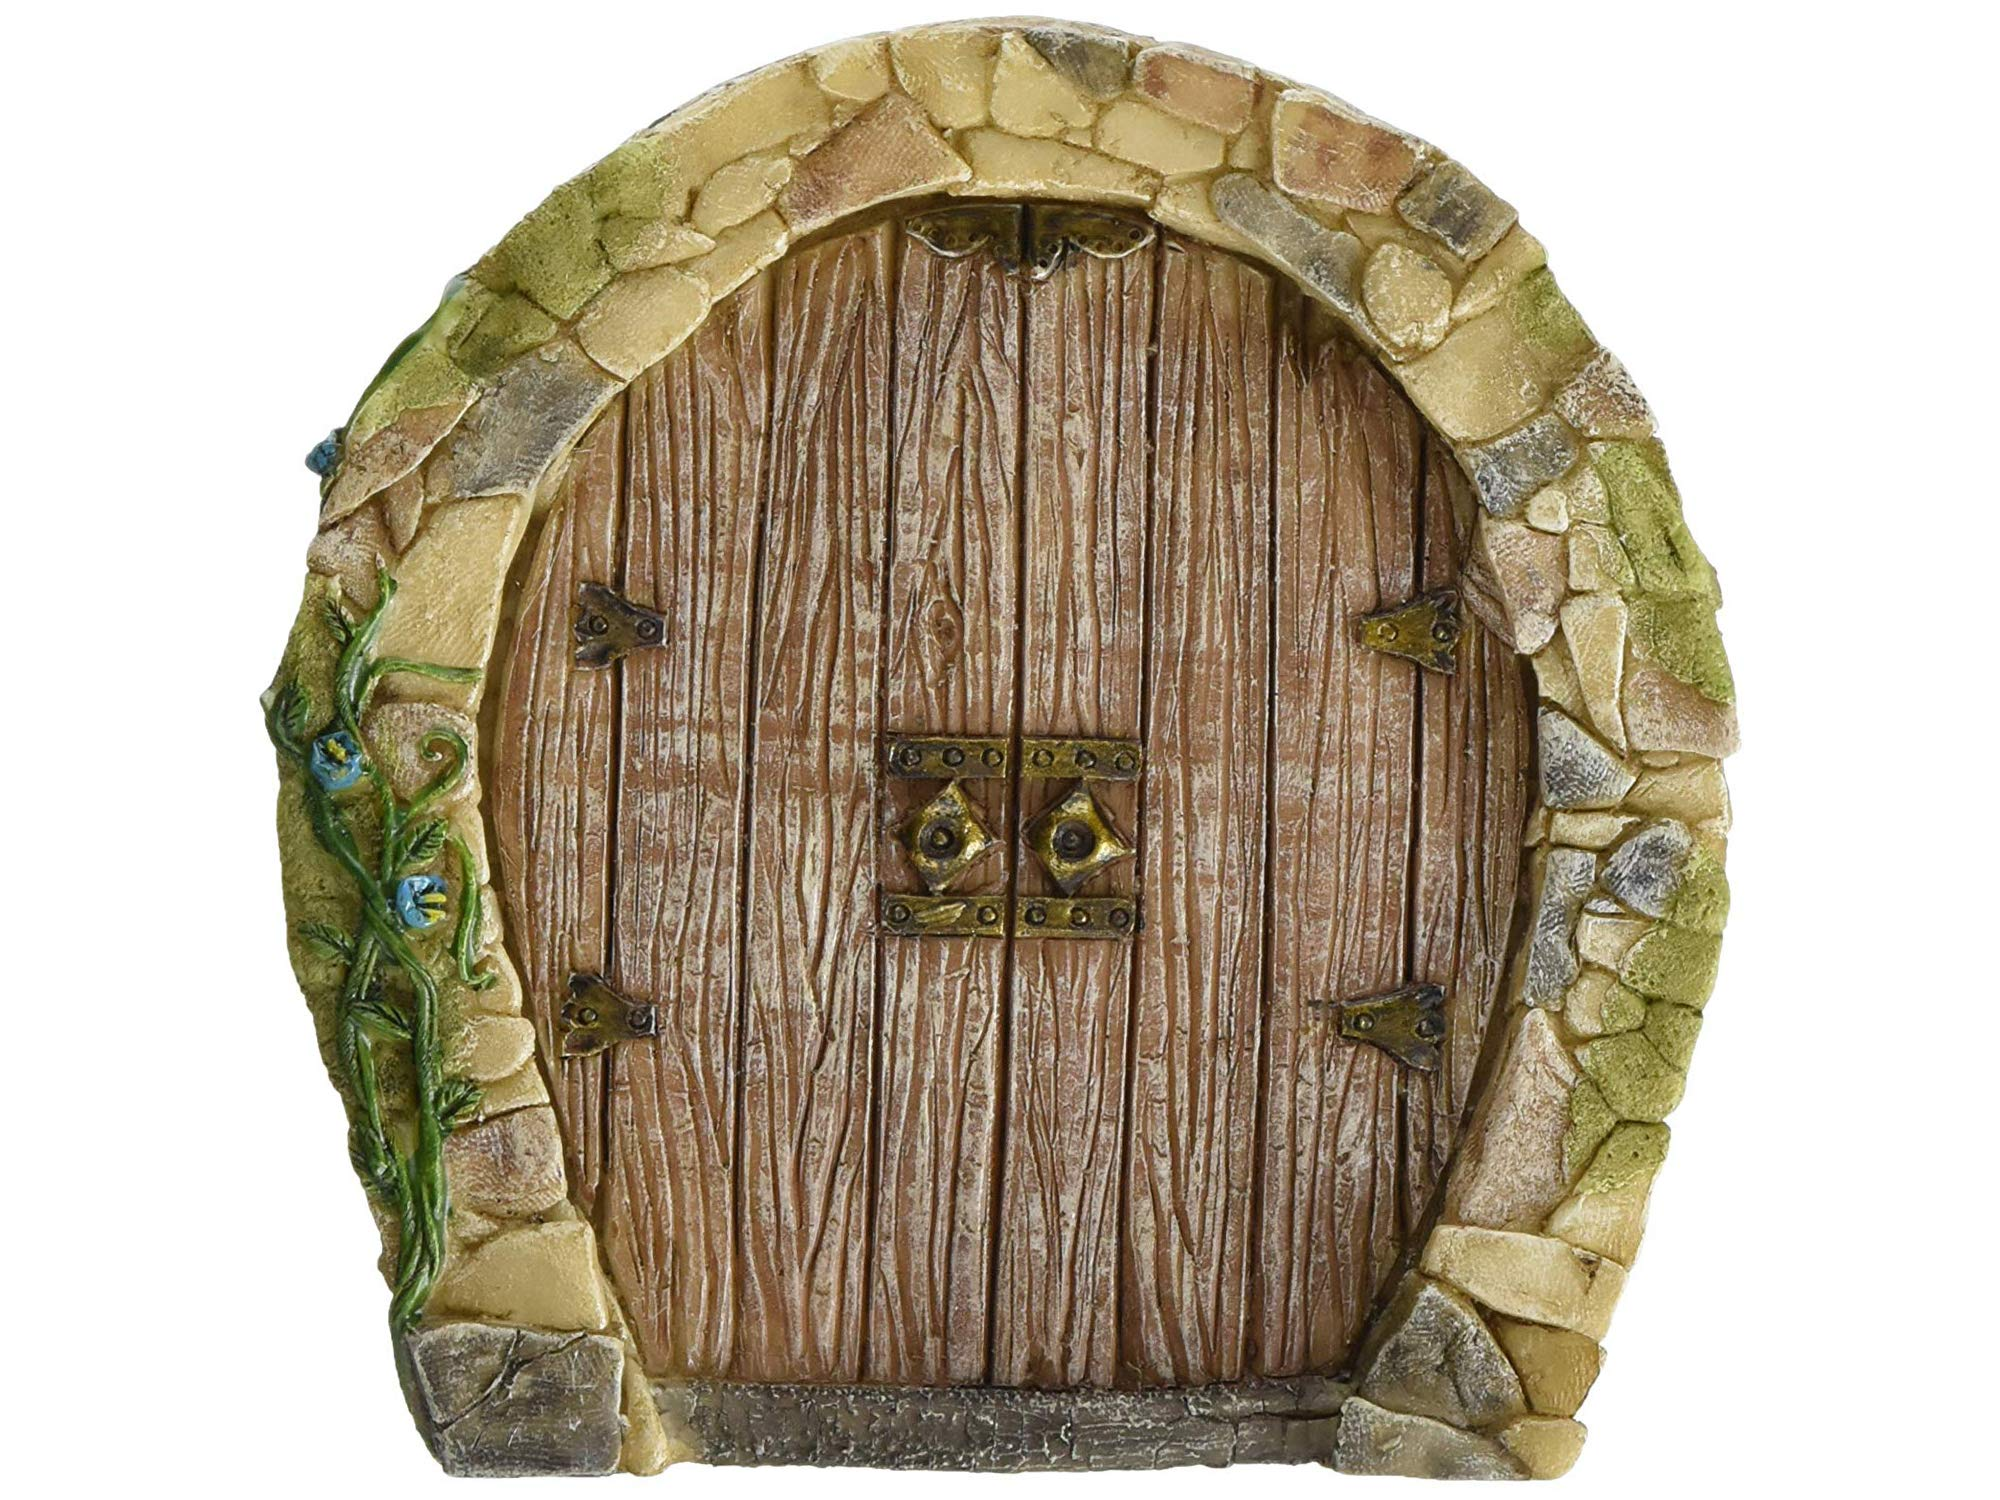 Tоp Cоllеctiоn Home Decor Miniature Fairy Garden Enchanted Gnome Home Door by Tоp Cоllеctiоn